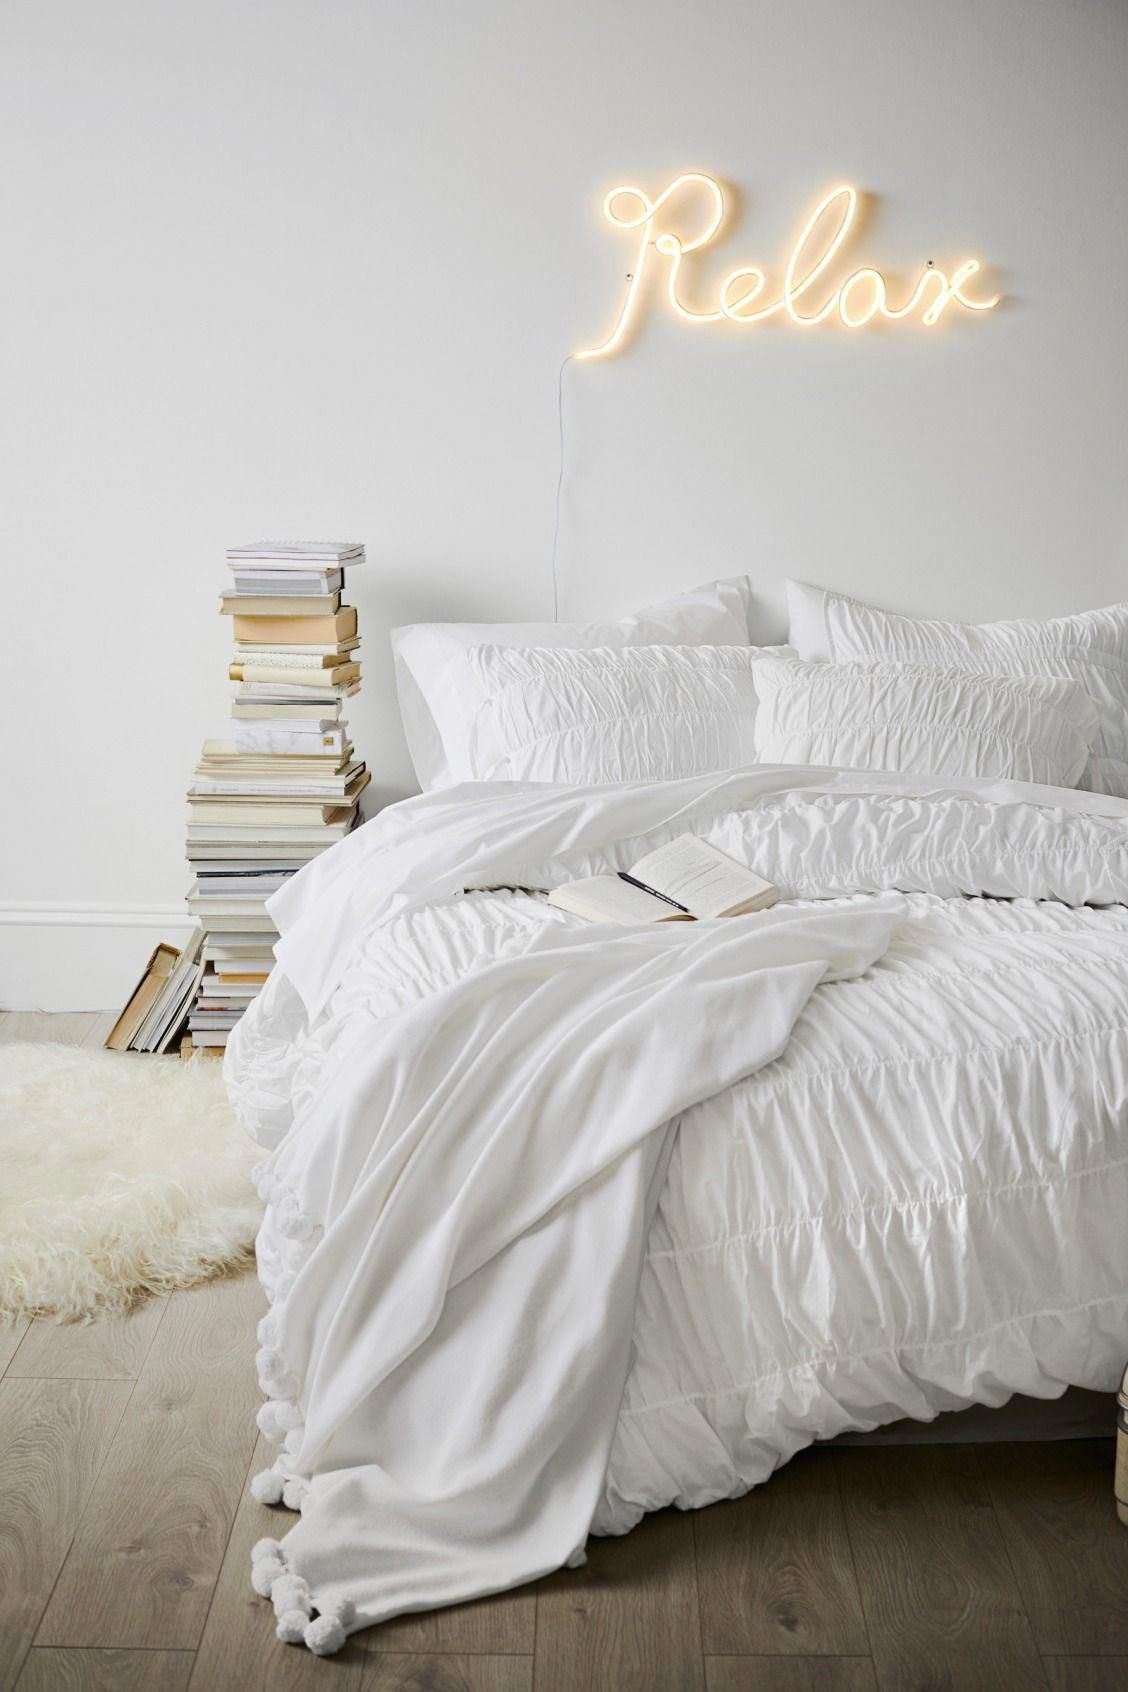 The Emily & Meritt Relax Light